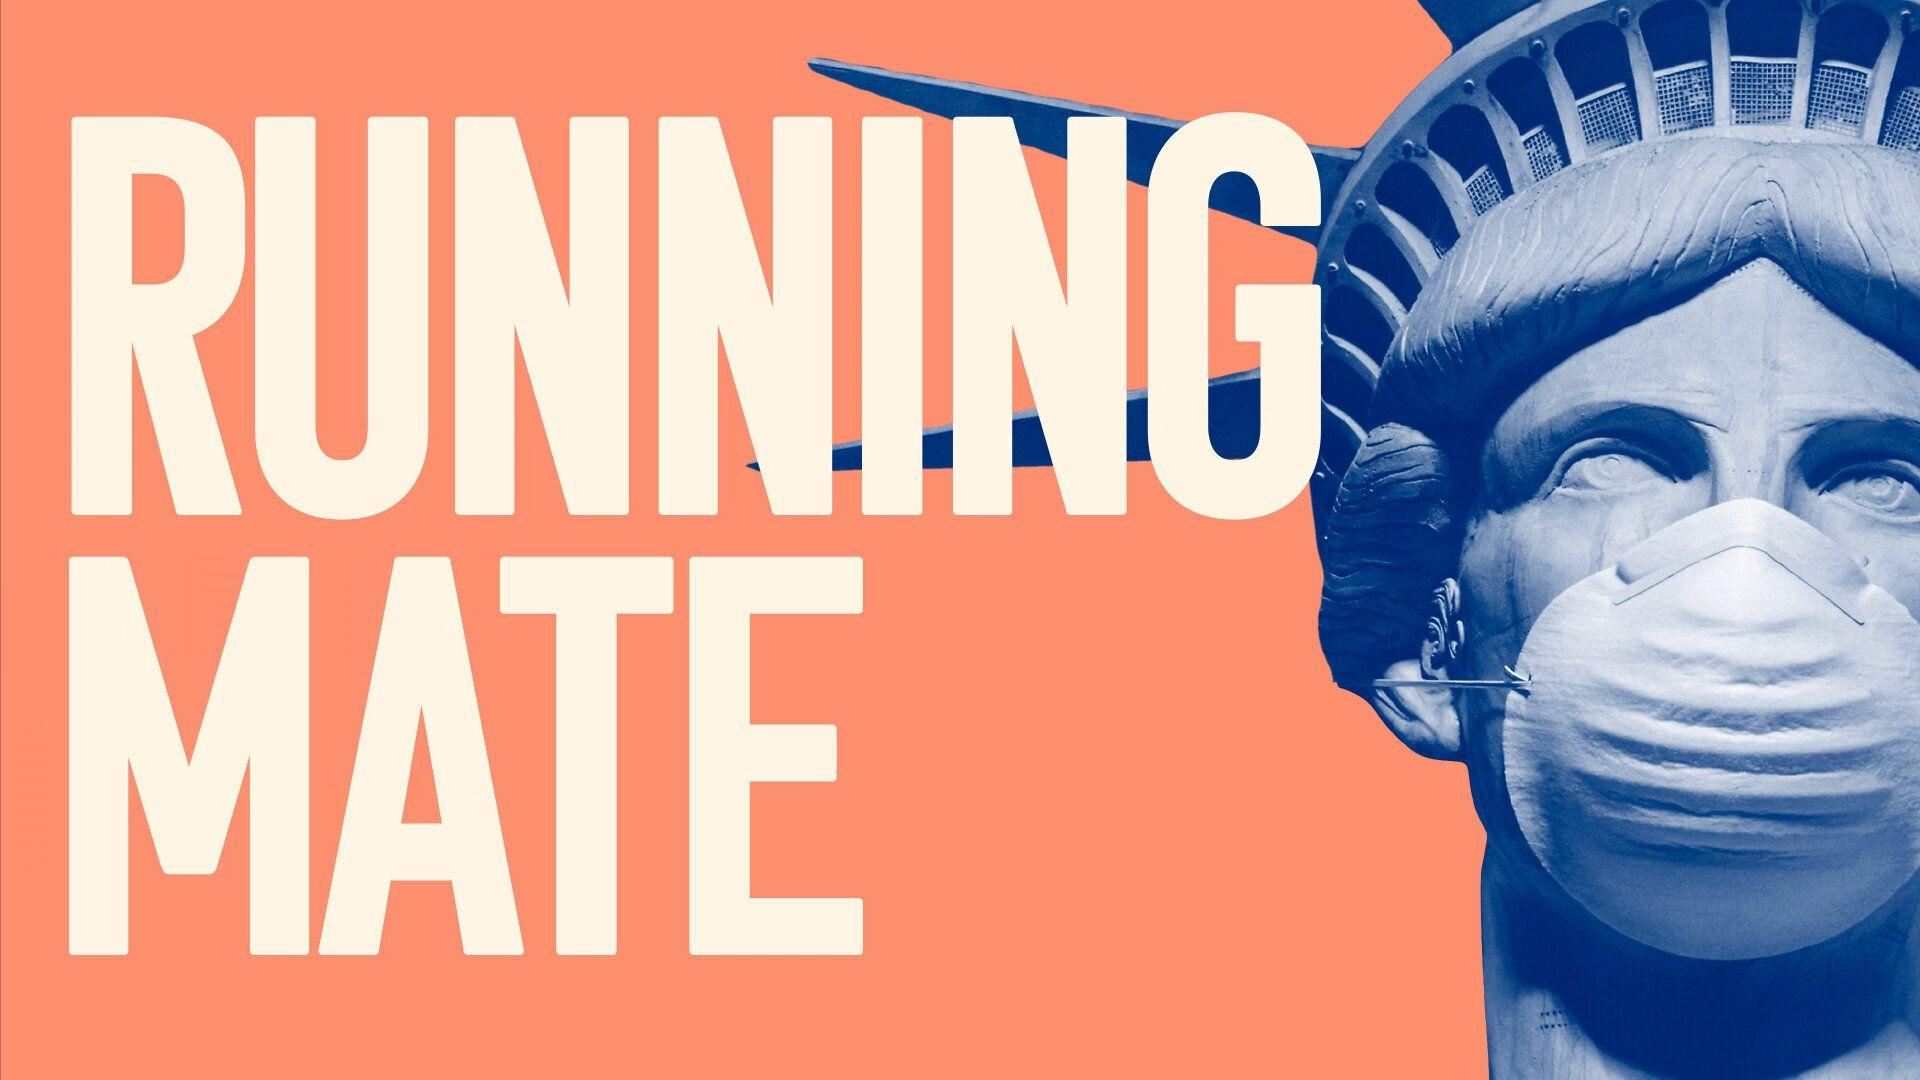 A Guide To US Election Night. Listen To Running Mate, Our American Politics Podcast For Brits